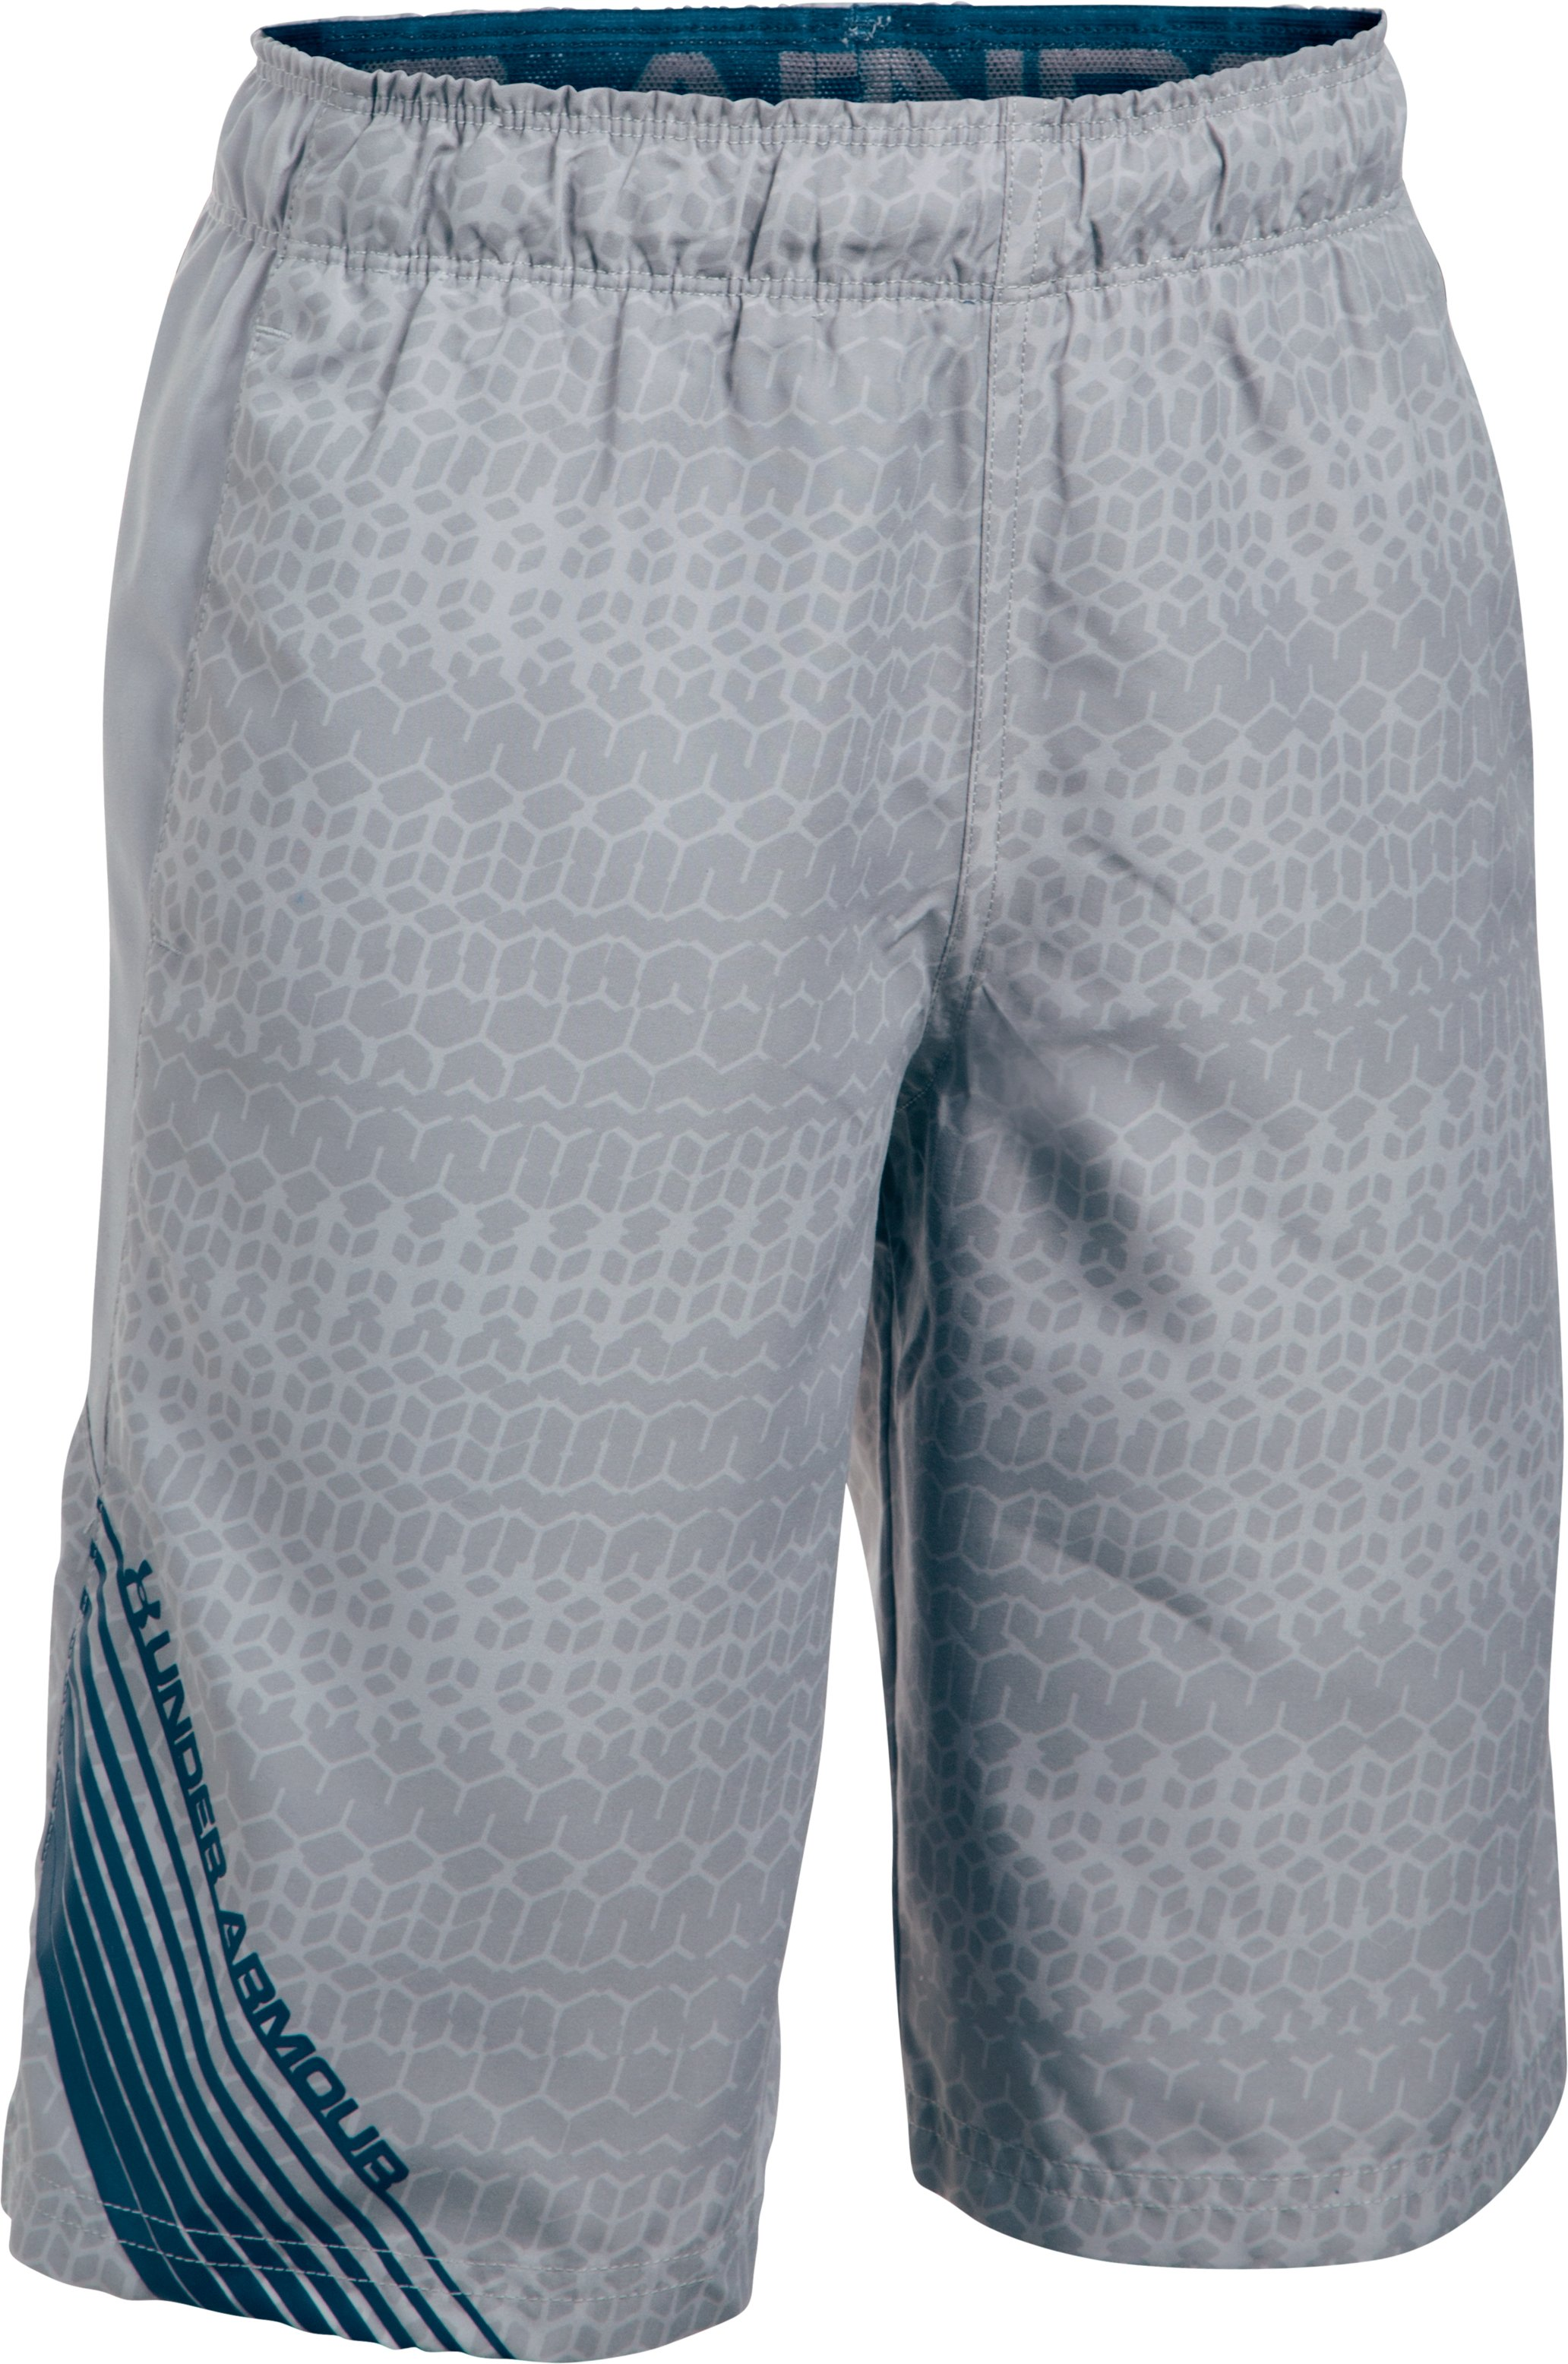 Boys' UA Volley Boardshorts, OVERCAST GRAY, undefined